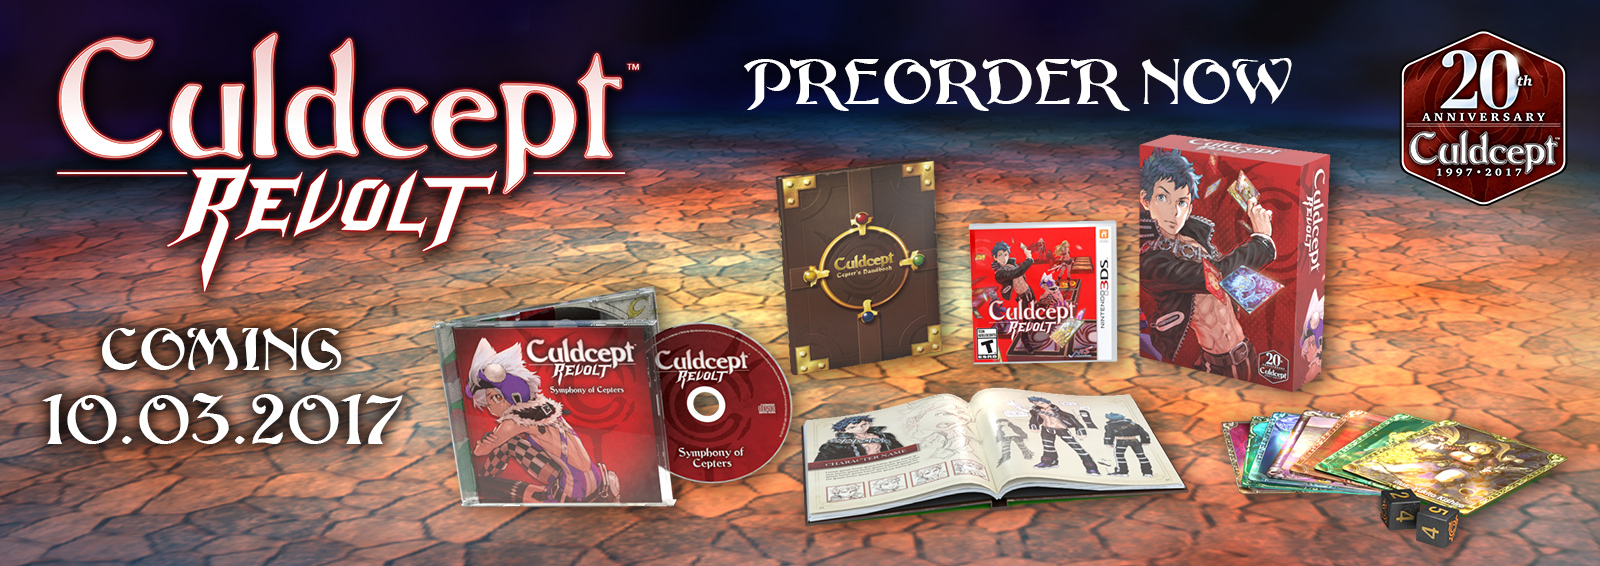 Culdcept Revolt Limited Edition for Nintendo 3DS™